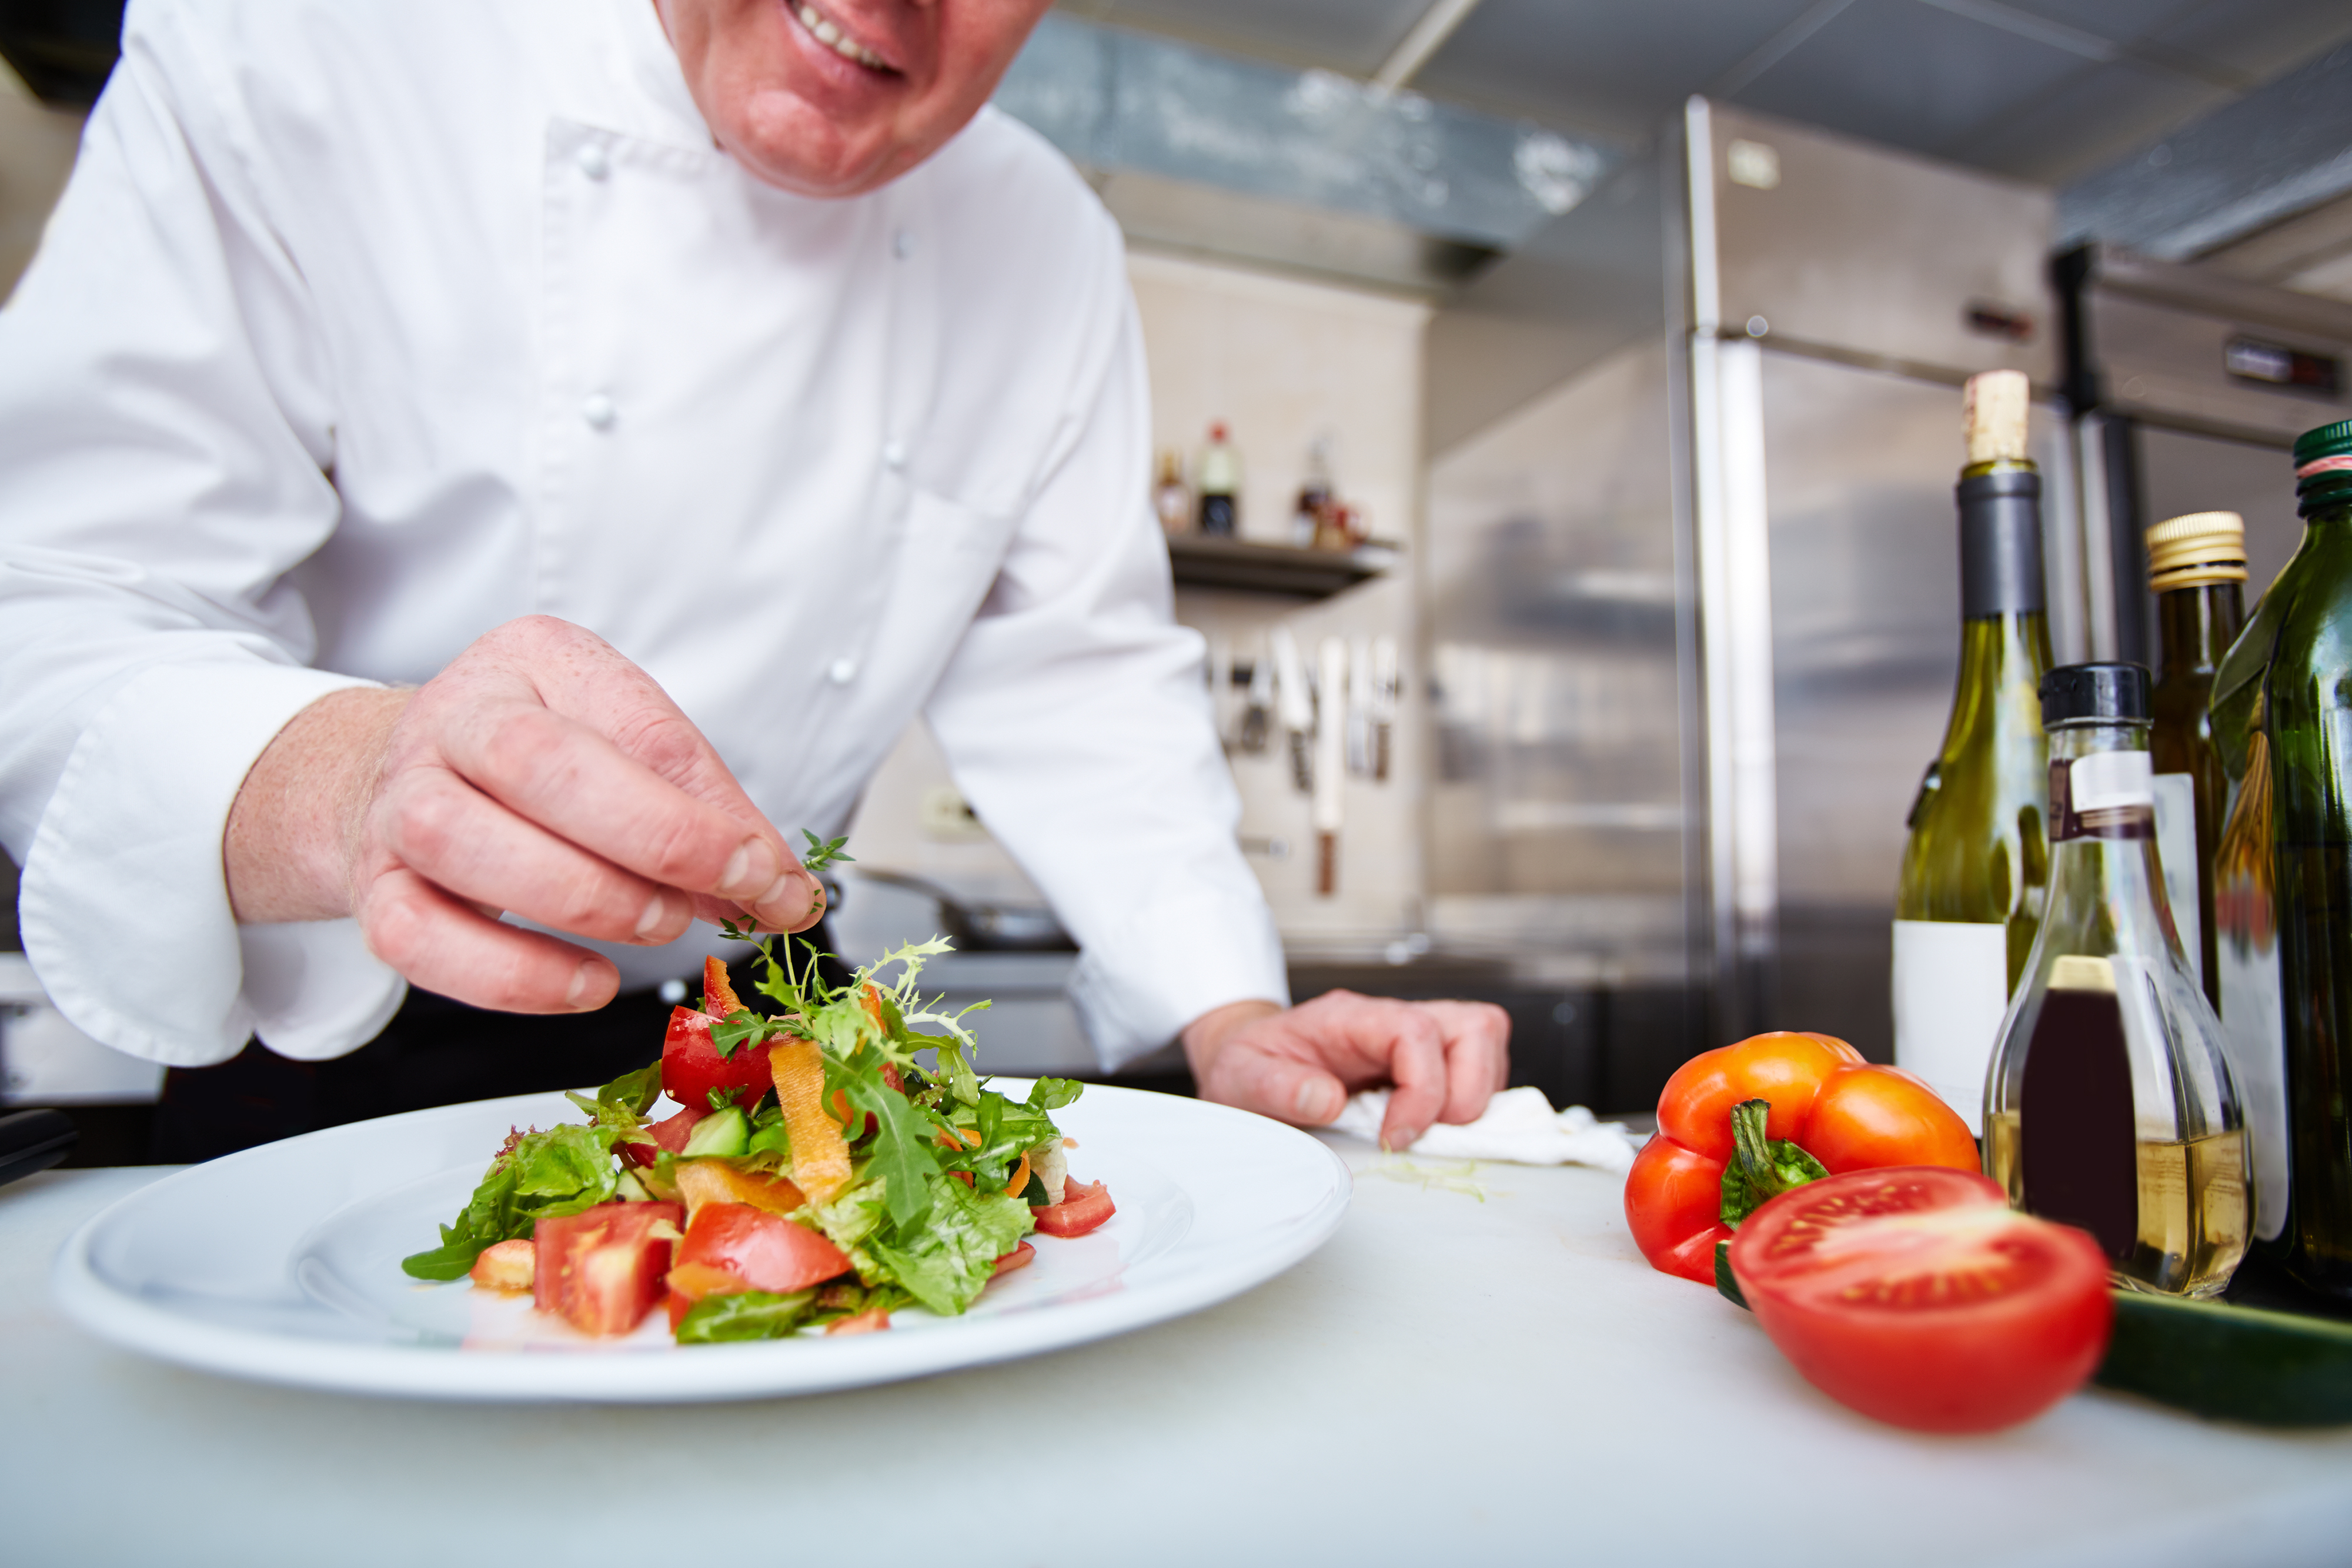 Personal Chef Naples FL